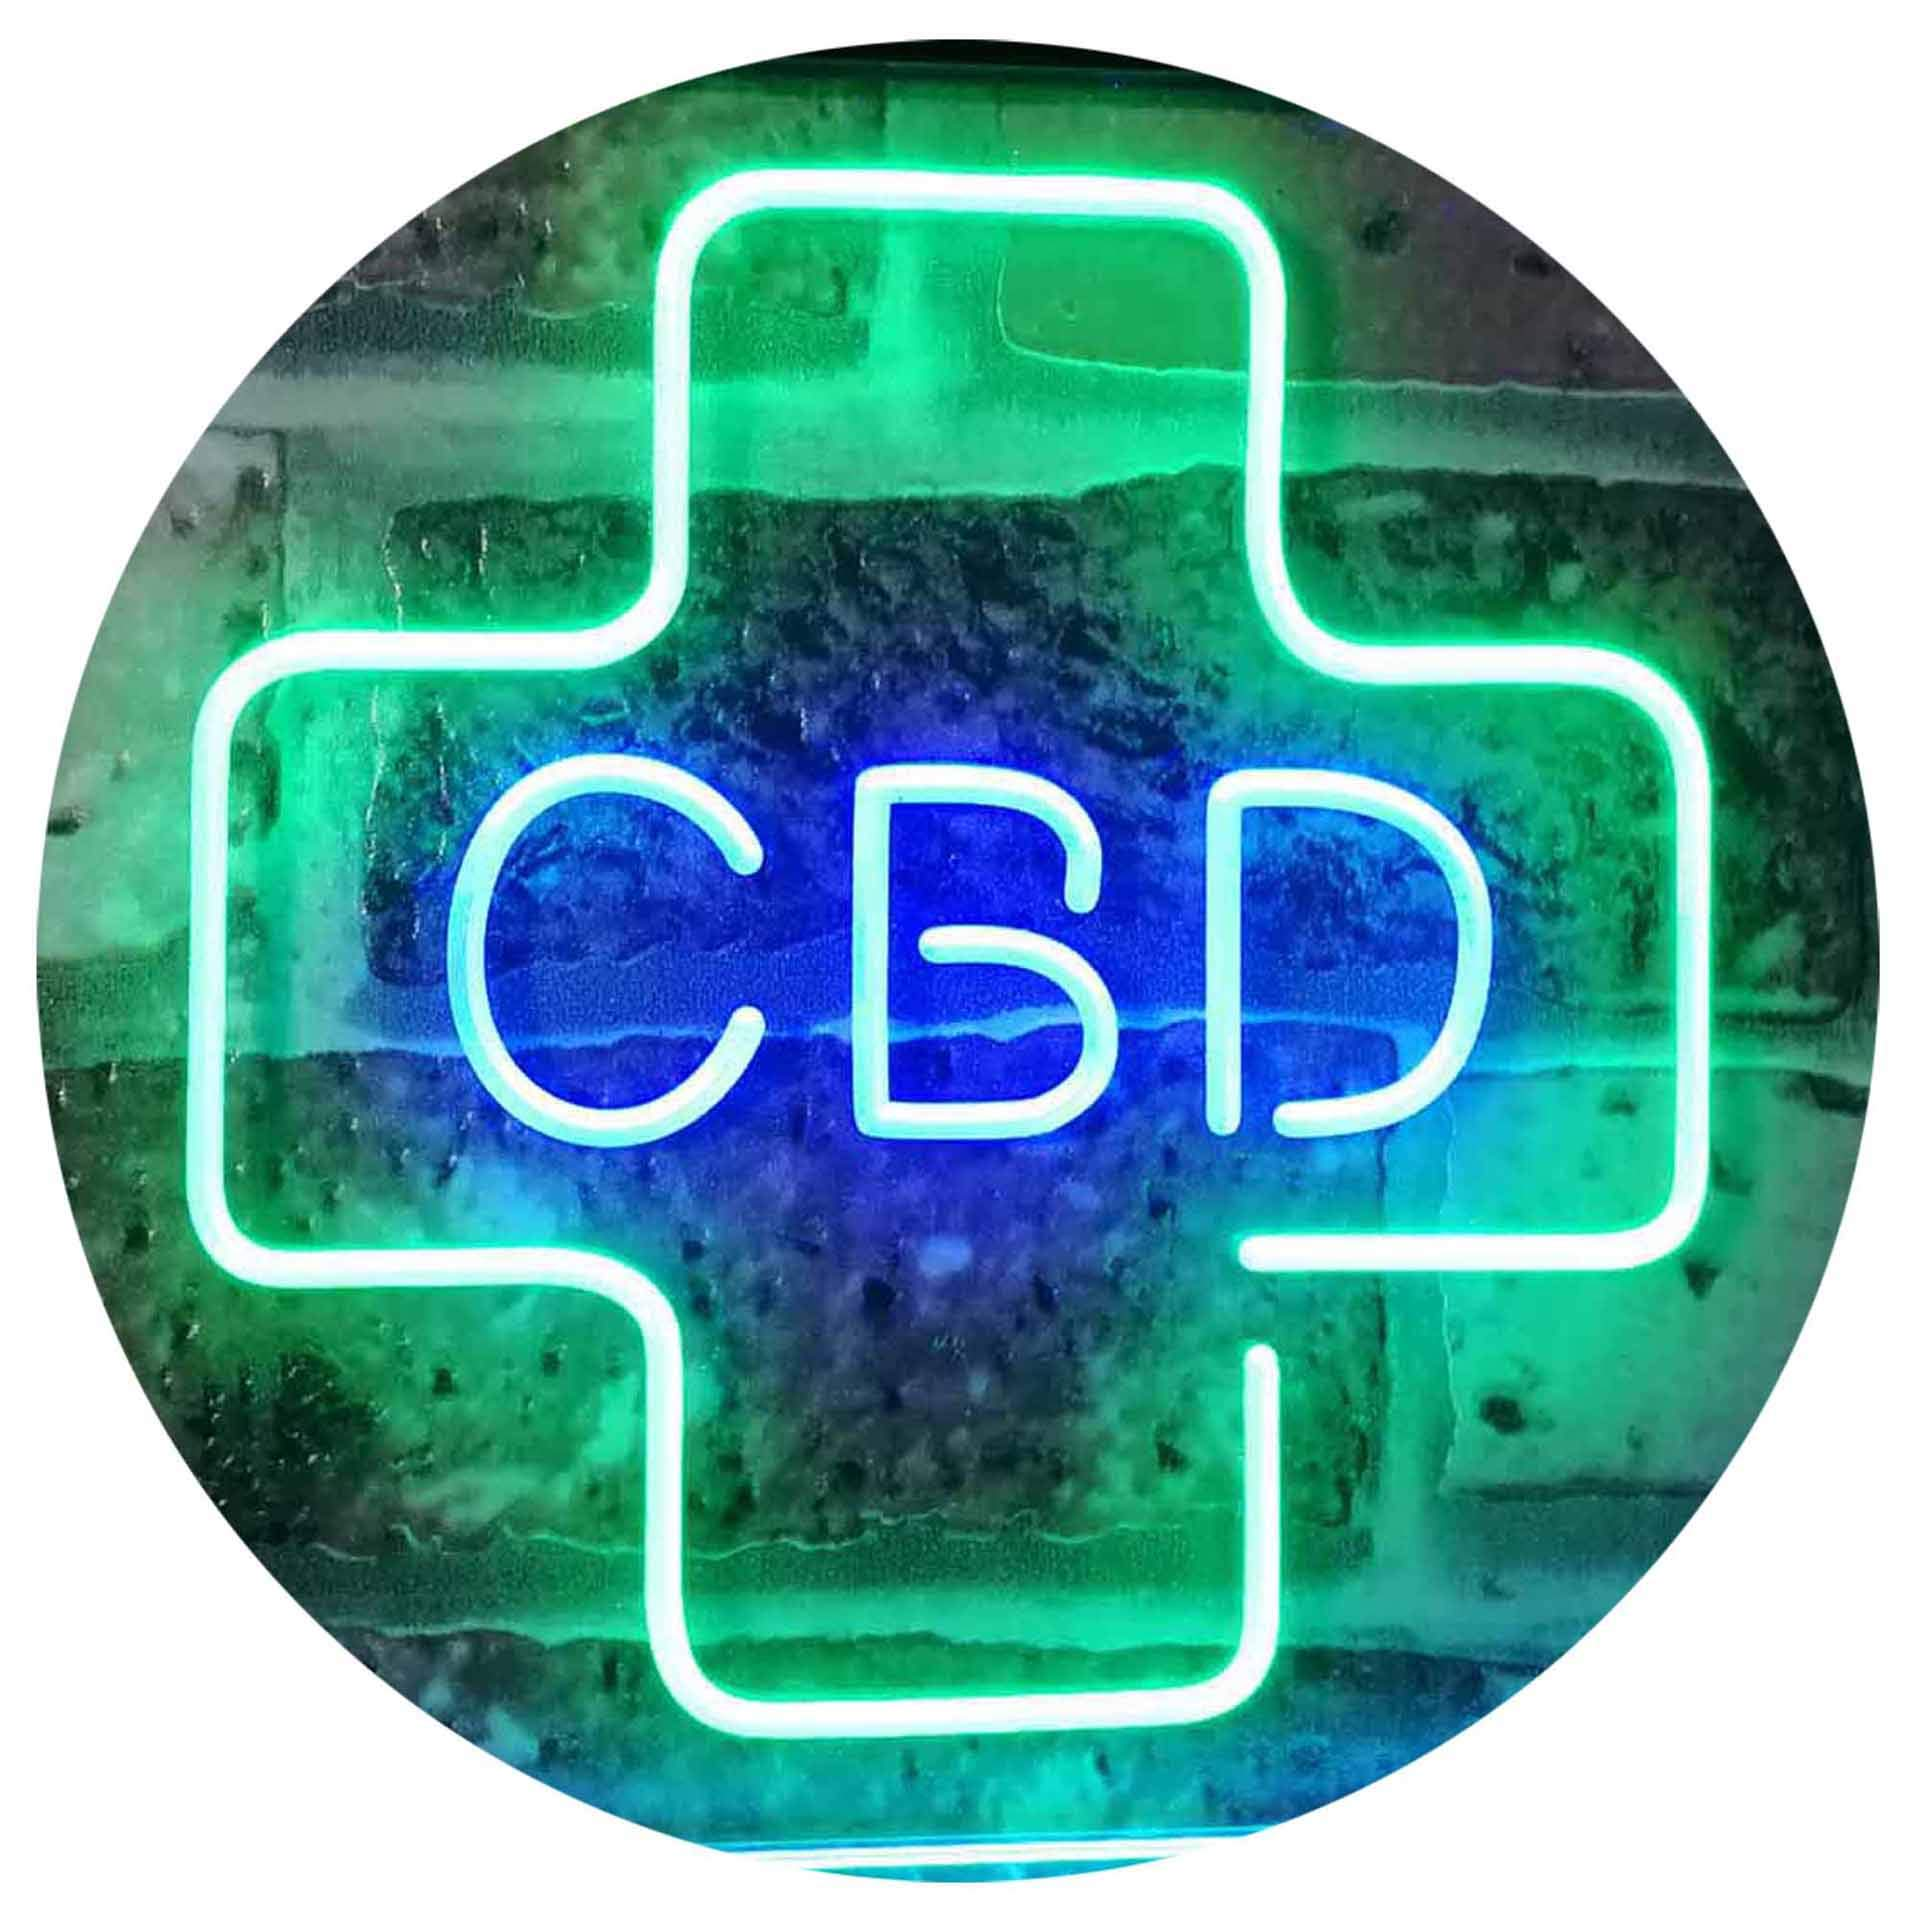 ADVPRO CBD Sold Here Medical Cross Indoor Dual Color LED Neon Sign Green & Blue 16 x 12 Inches st6s43-i3083-gb